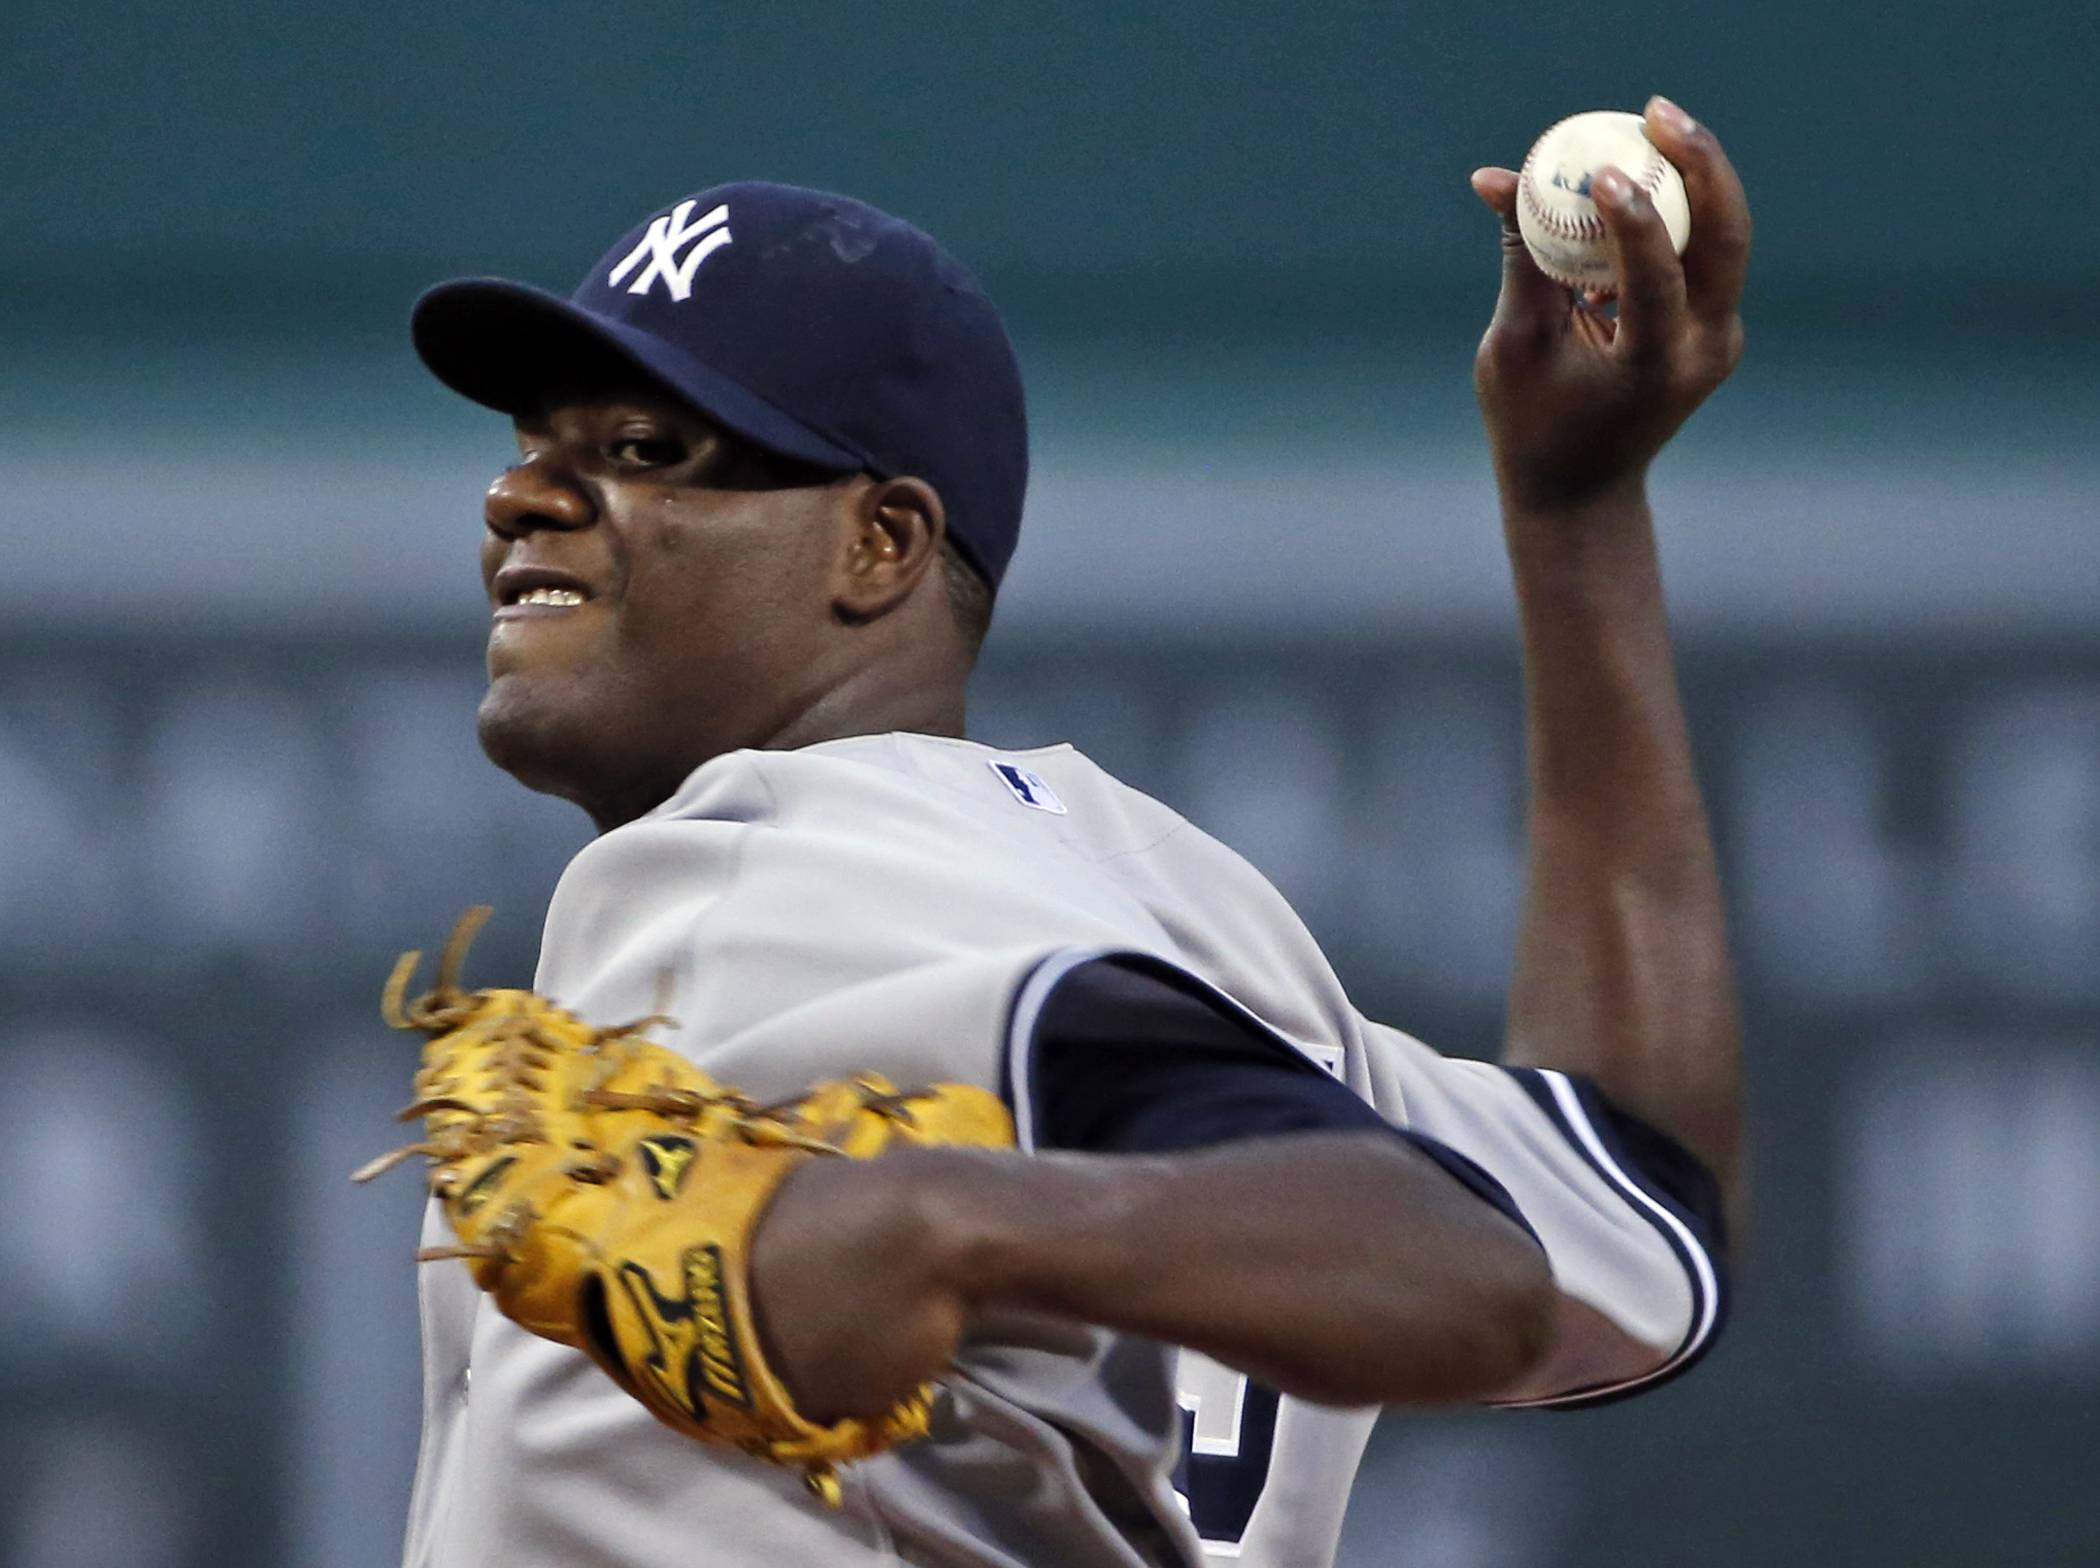 New York Yankees starting pitcher Michael Pineda was ejected from Wednesday's game against the Red Sox during the second inning after umpires found a foreign substance on his neck.